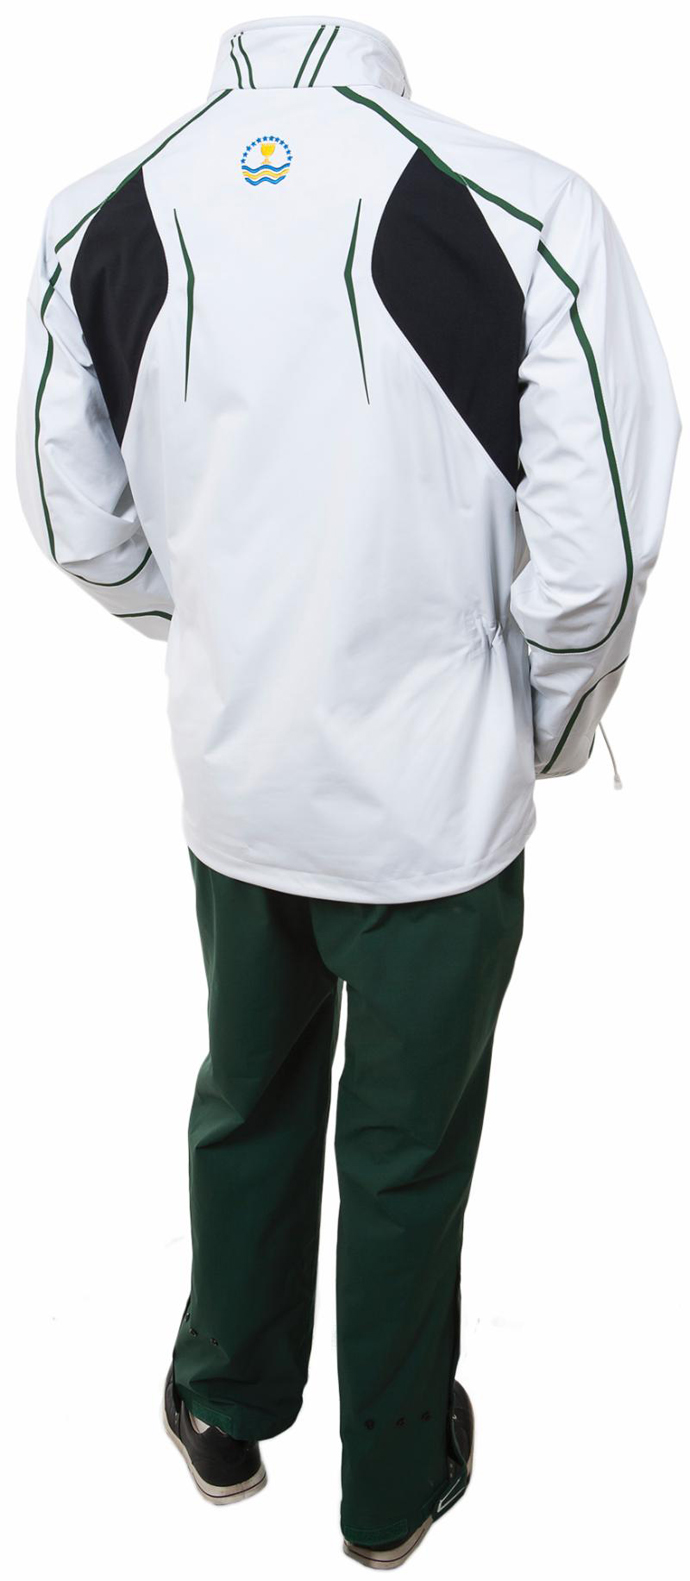 The rain gear (back) for the International Team at the 2013 Presidents Cup.